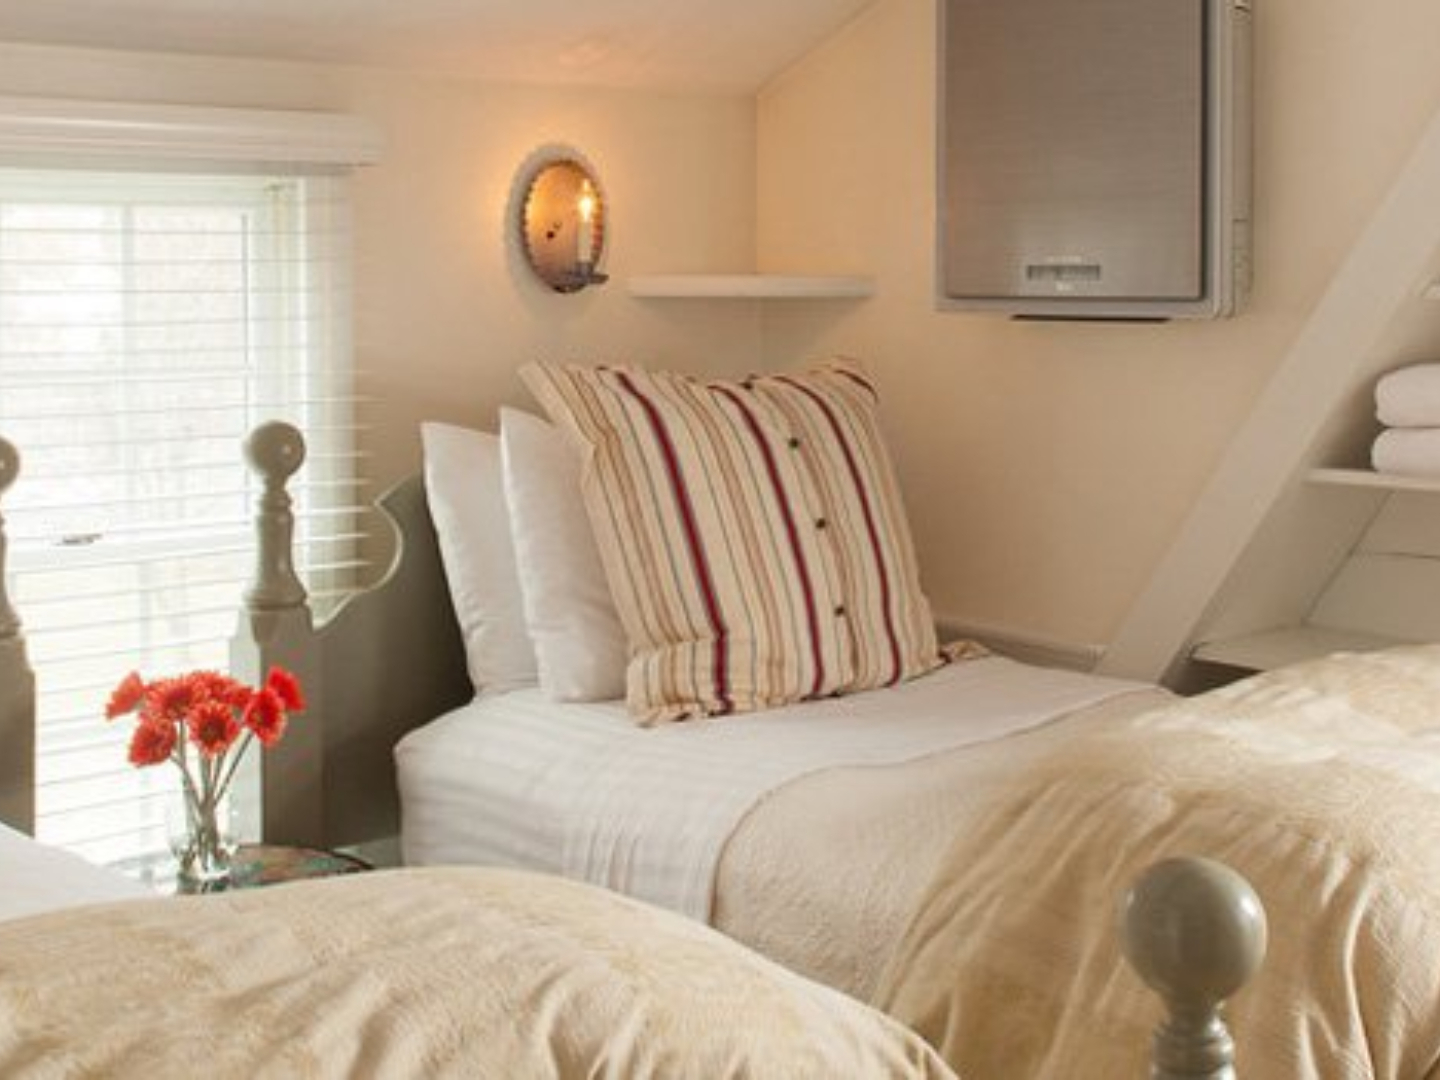 Lenox Bed and Breakfast